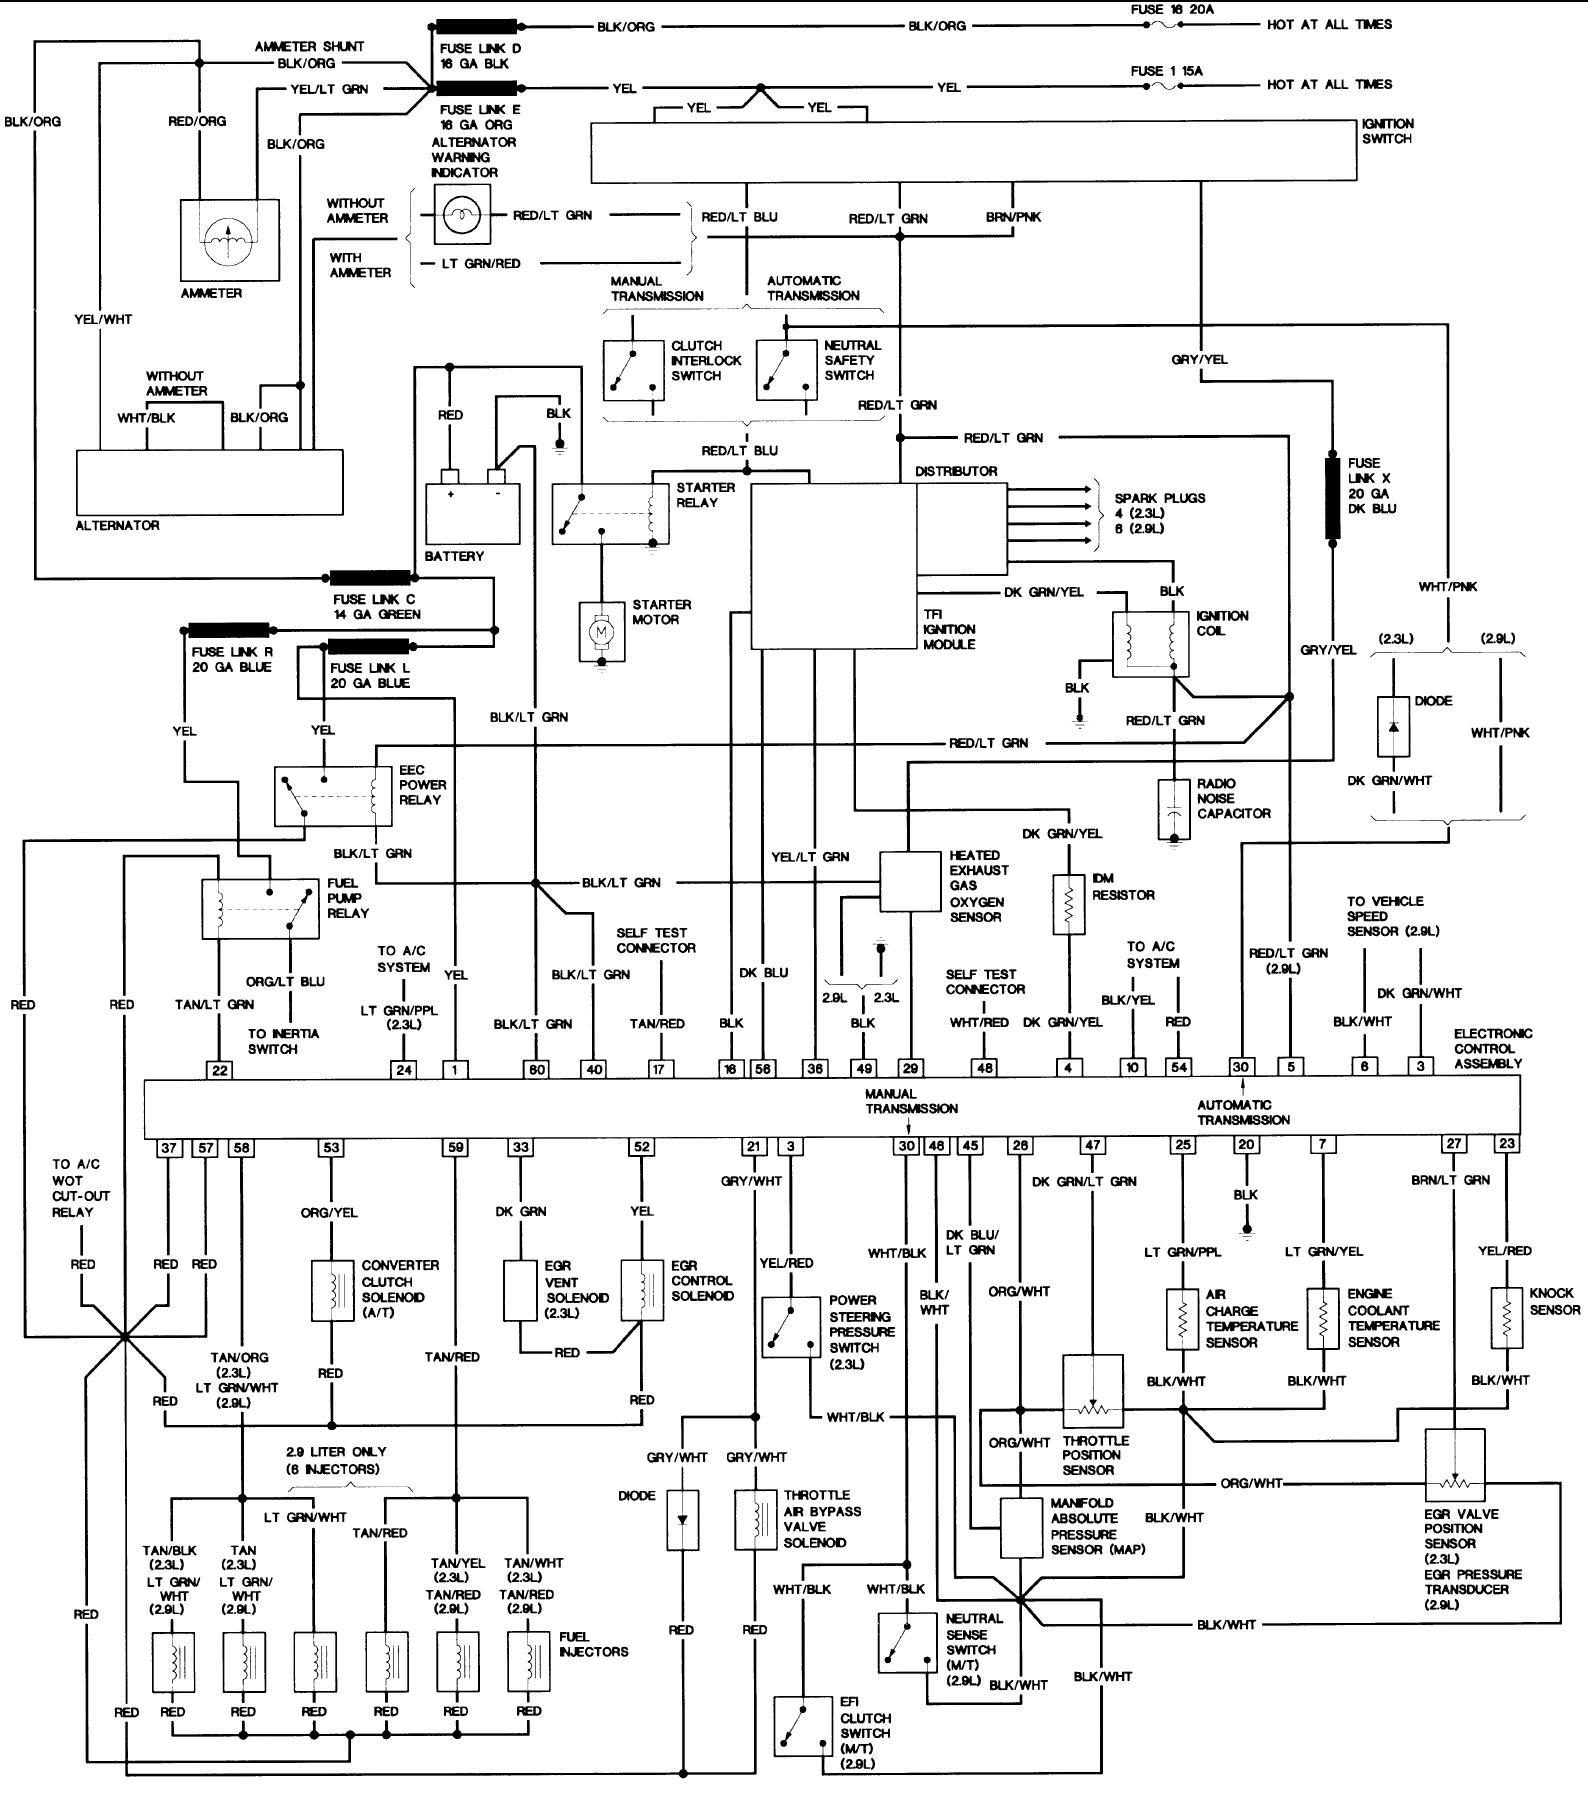 Manuals 89 Ford Bronco Wiring Diagram FULL Version HD Quality Wiring  Diagram - MAES-DIAGRAM.XAQUASHOP.IT